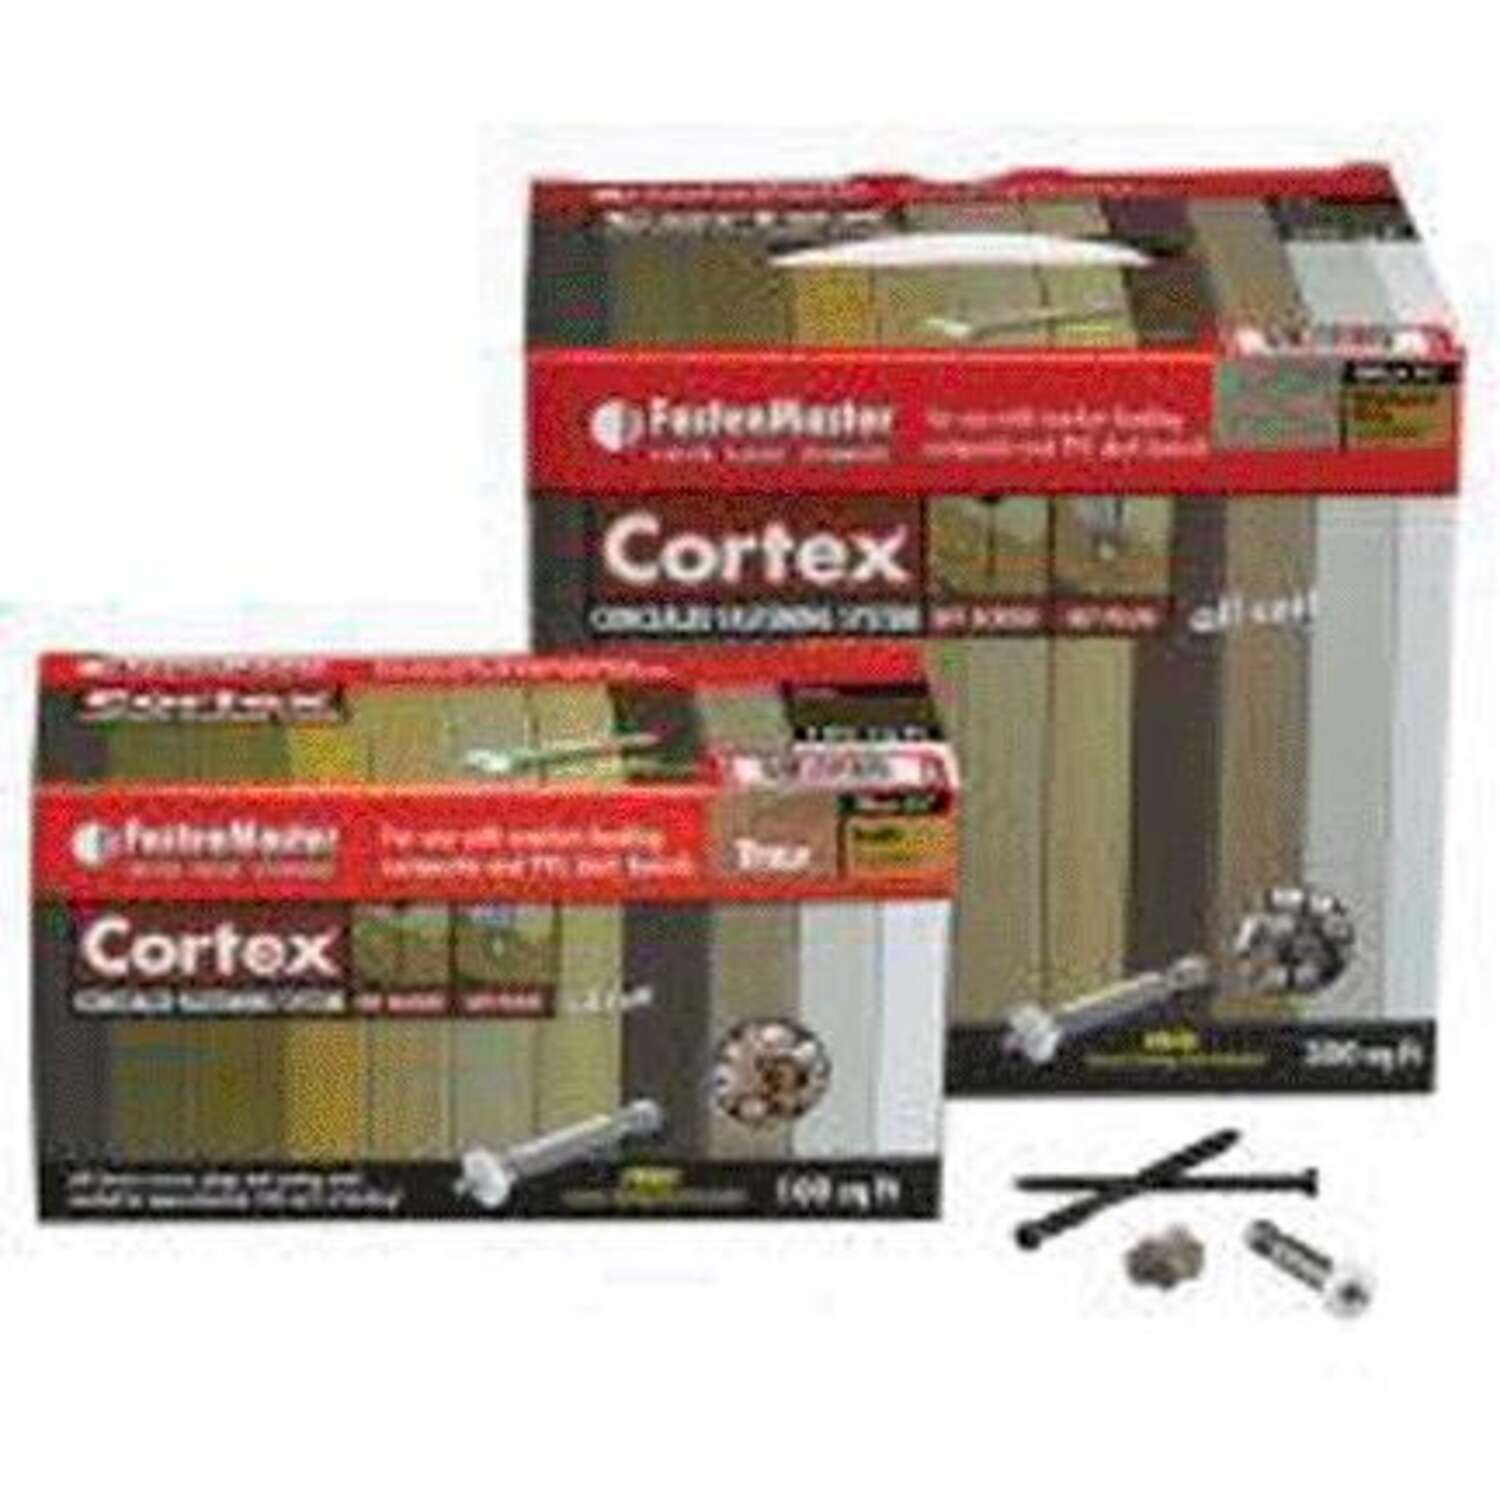 FastenMaster  Cortex  2-3/4 in. L Torx Ttap  Star Head Deck Screws and Plugs Kit  1 pk